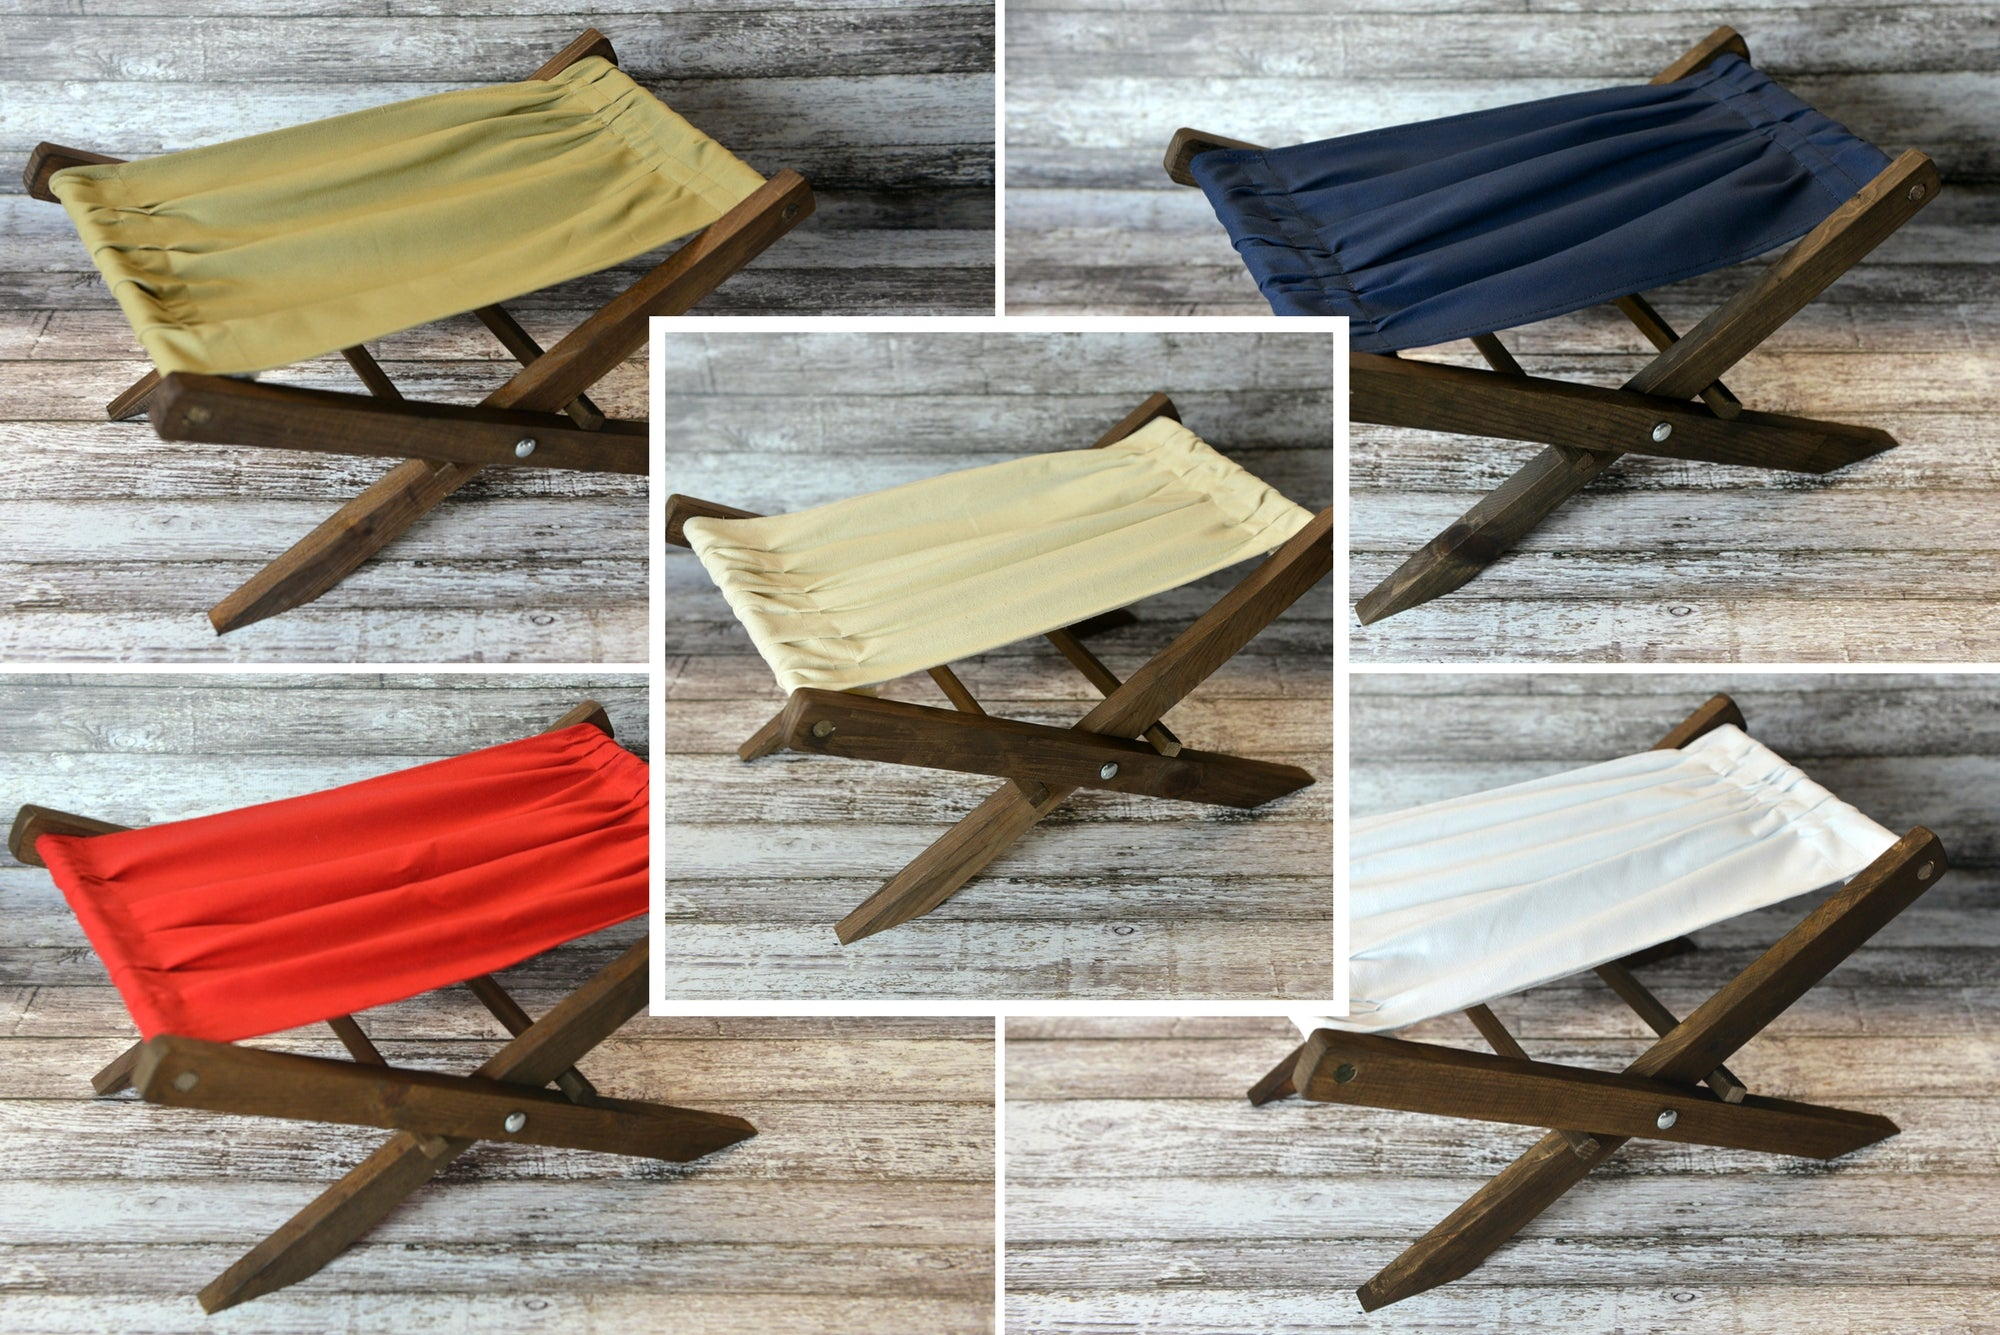 Rustic Deck Chair - 5 Colors - Interchangeable-Newborn Photography Props